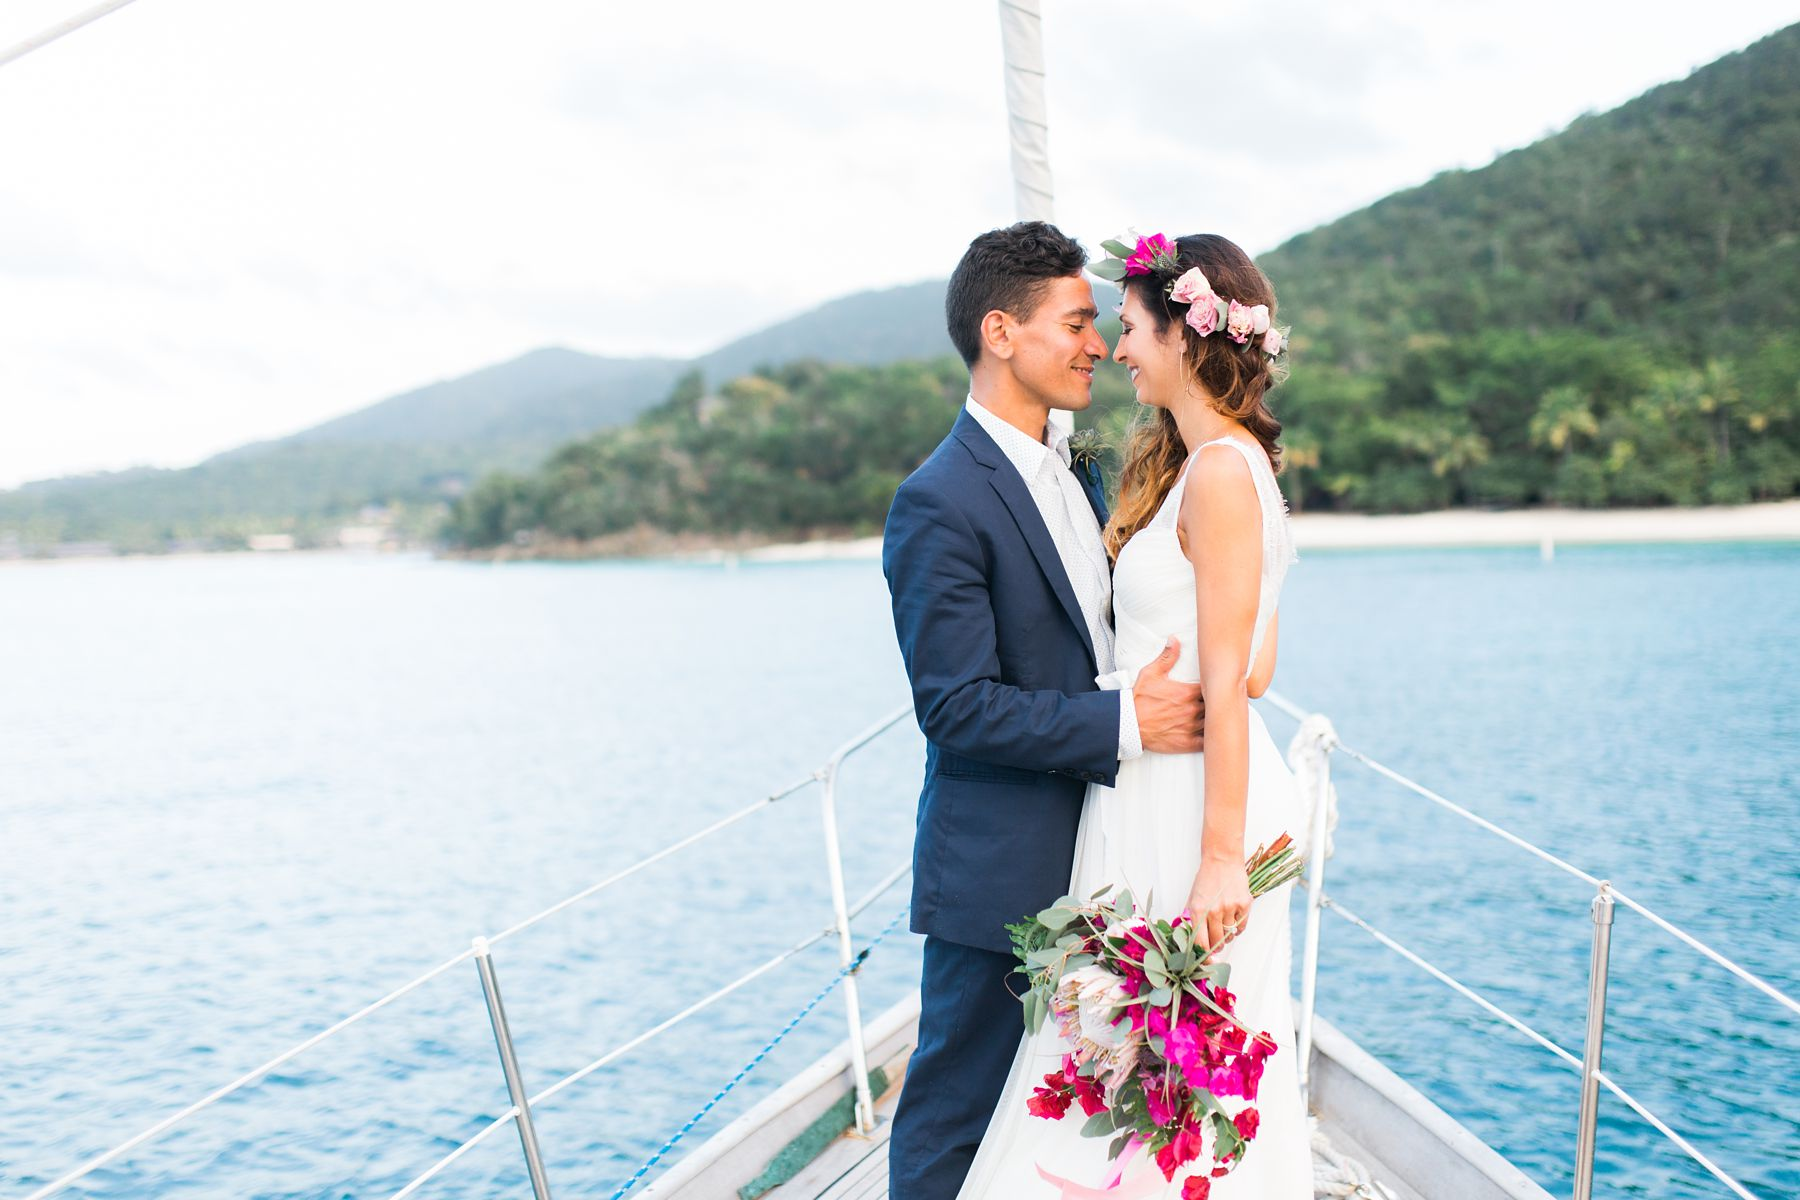 DESTINATION-WEDDING-SAIL-BOAT-ELOPEMENT-VIRGIN-ISLANDS-ST-JOHN-SAVANAH-LOFTUS_0005.jpg